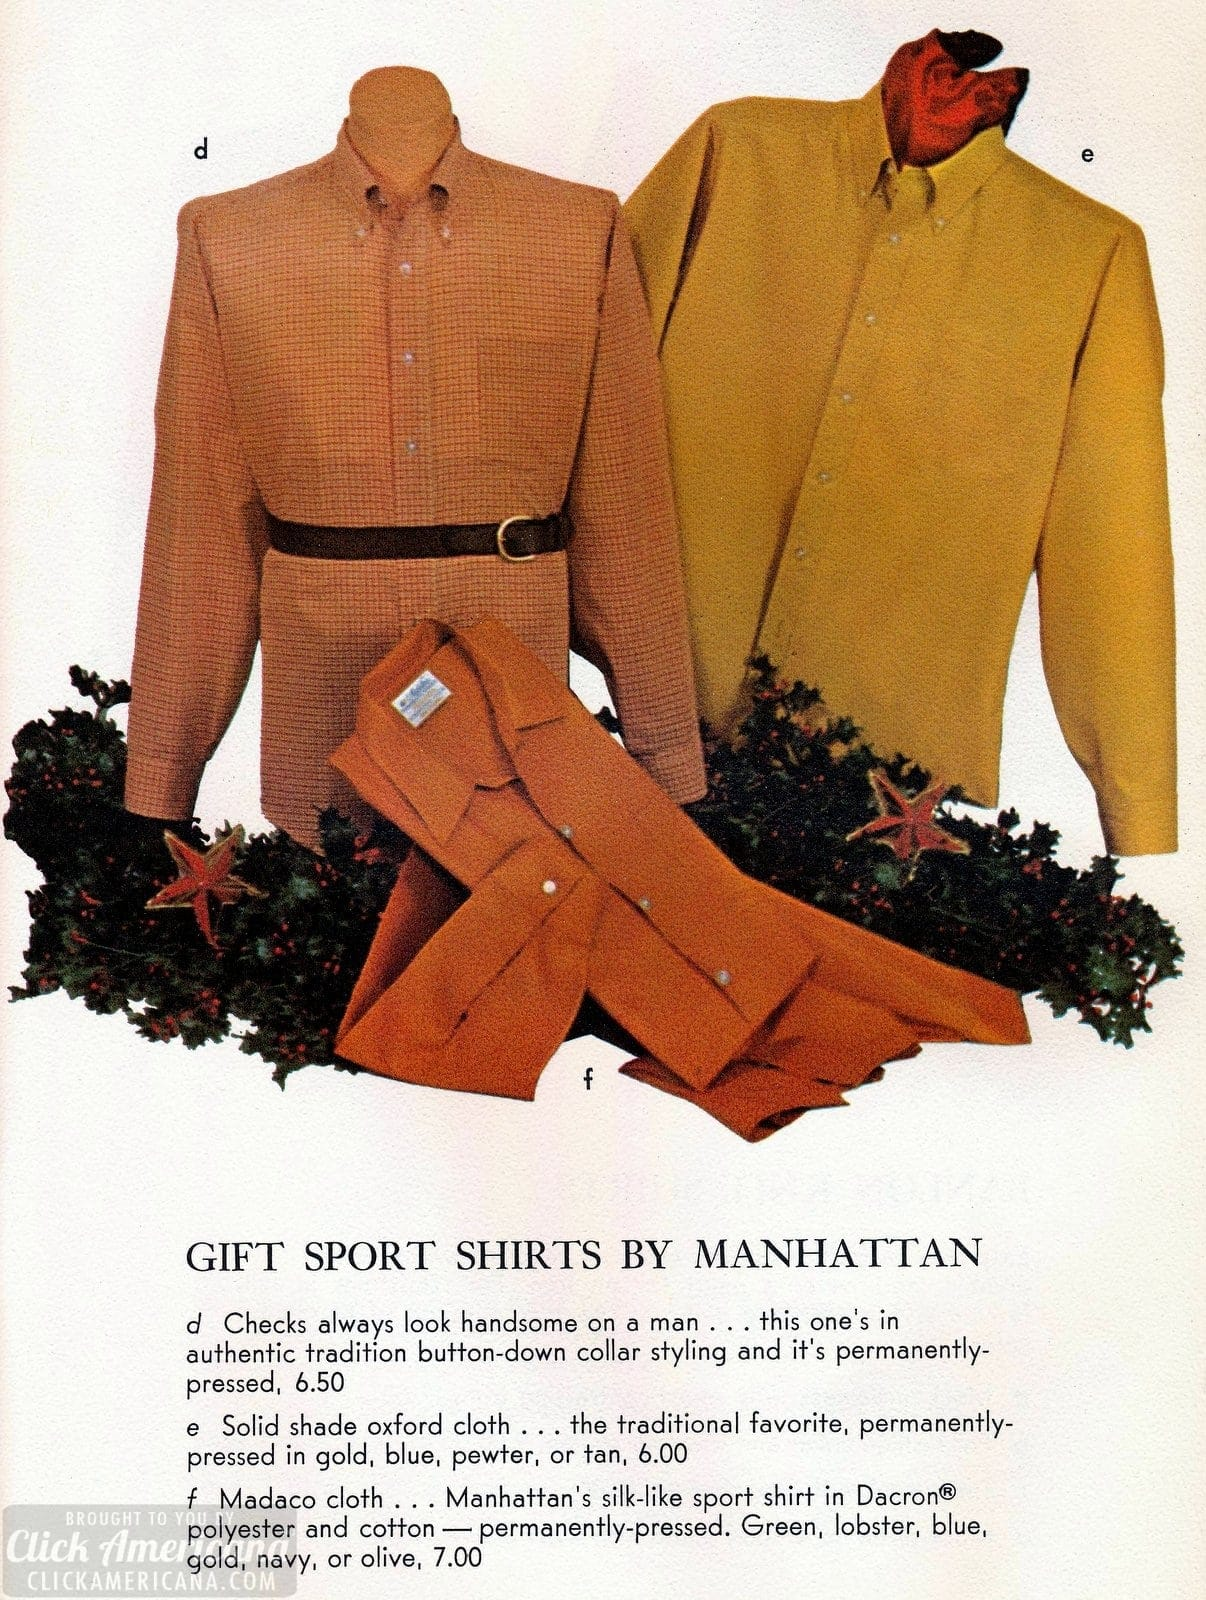 Sixties gift sports shirts by Manhattan - checks, solid Oxford, Madaco cloth